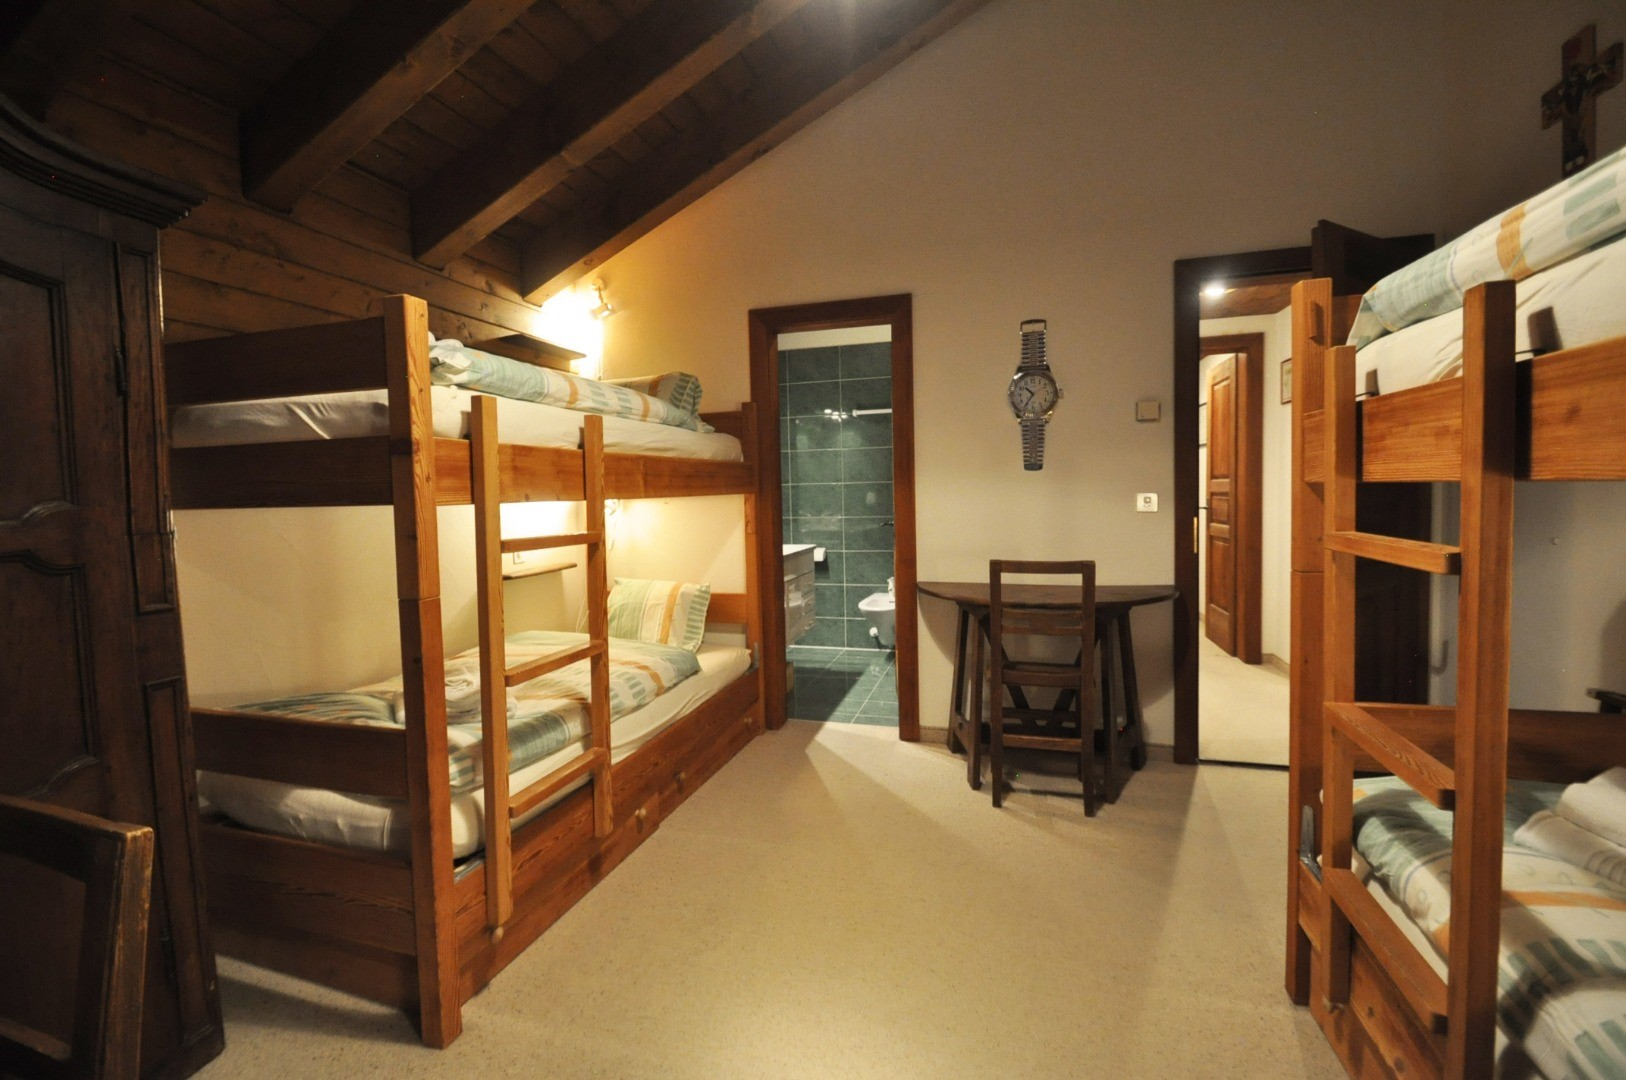 ZermattCervinoMiddleBedroom1.jpg